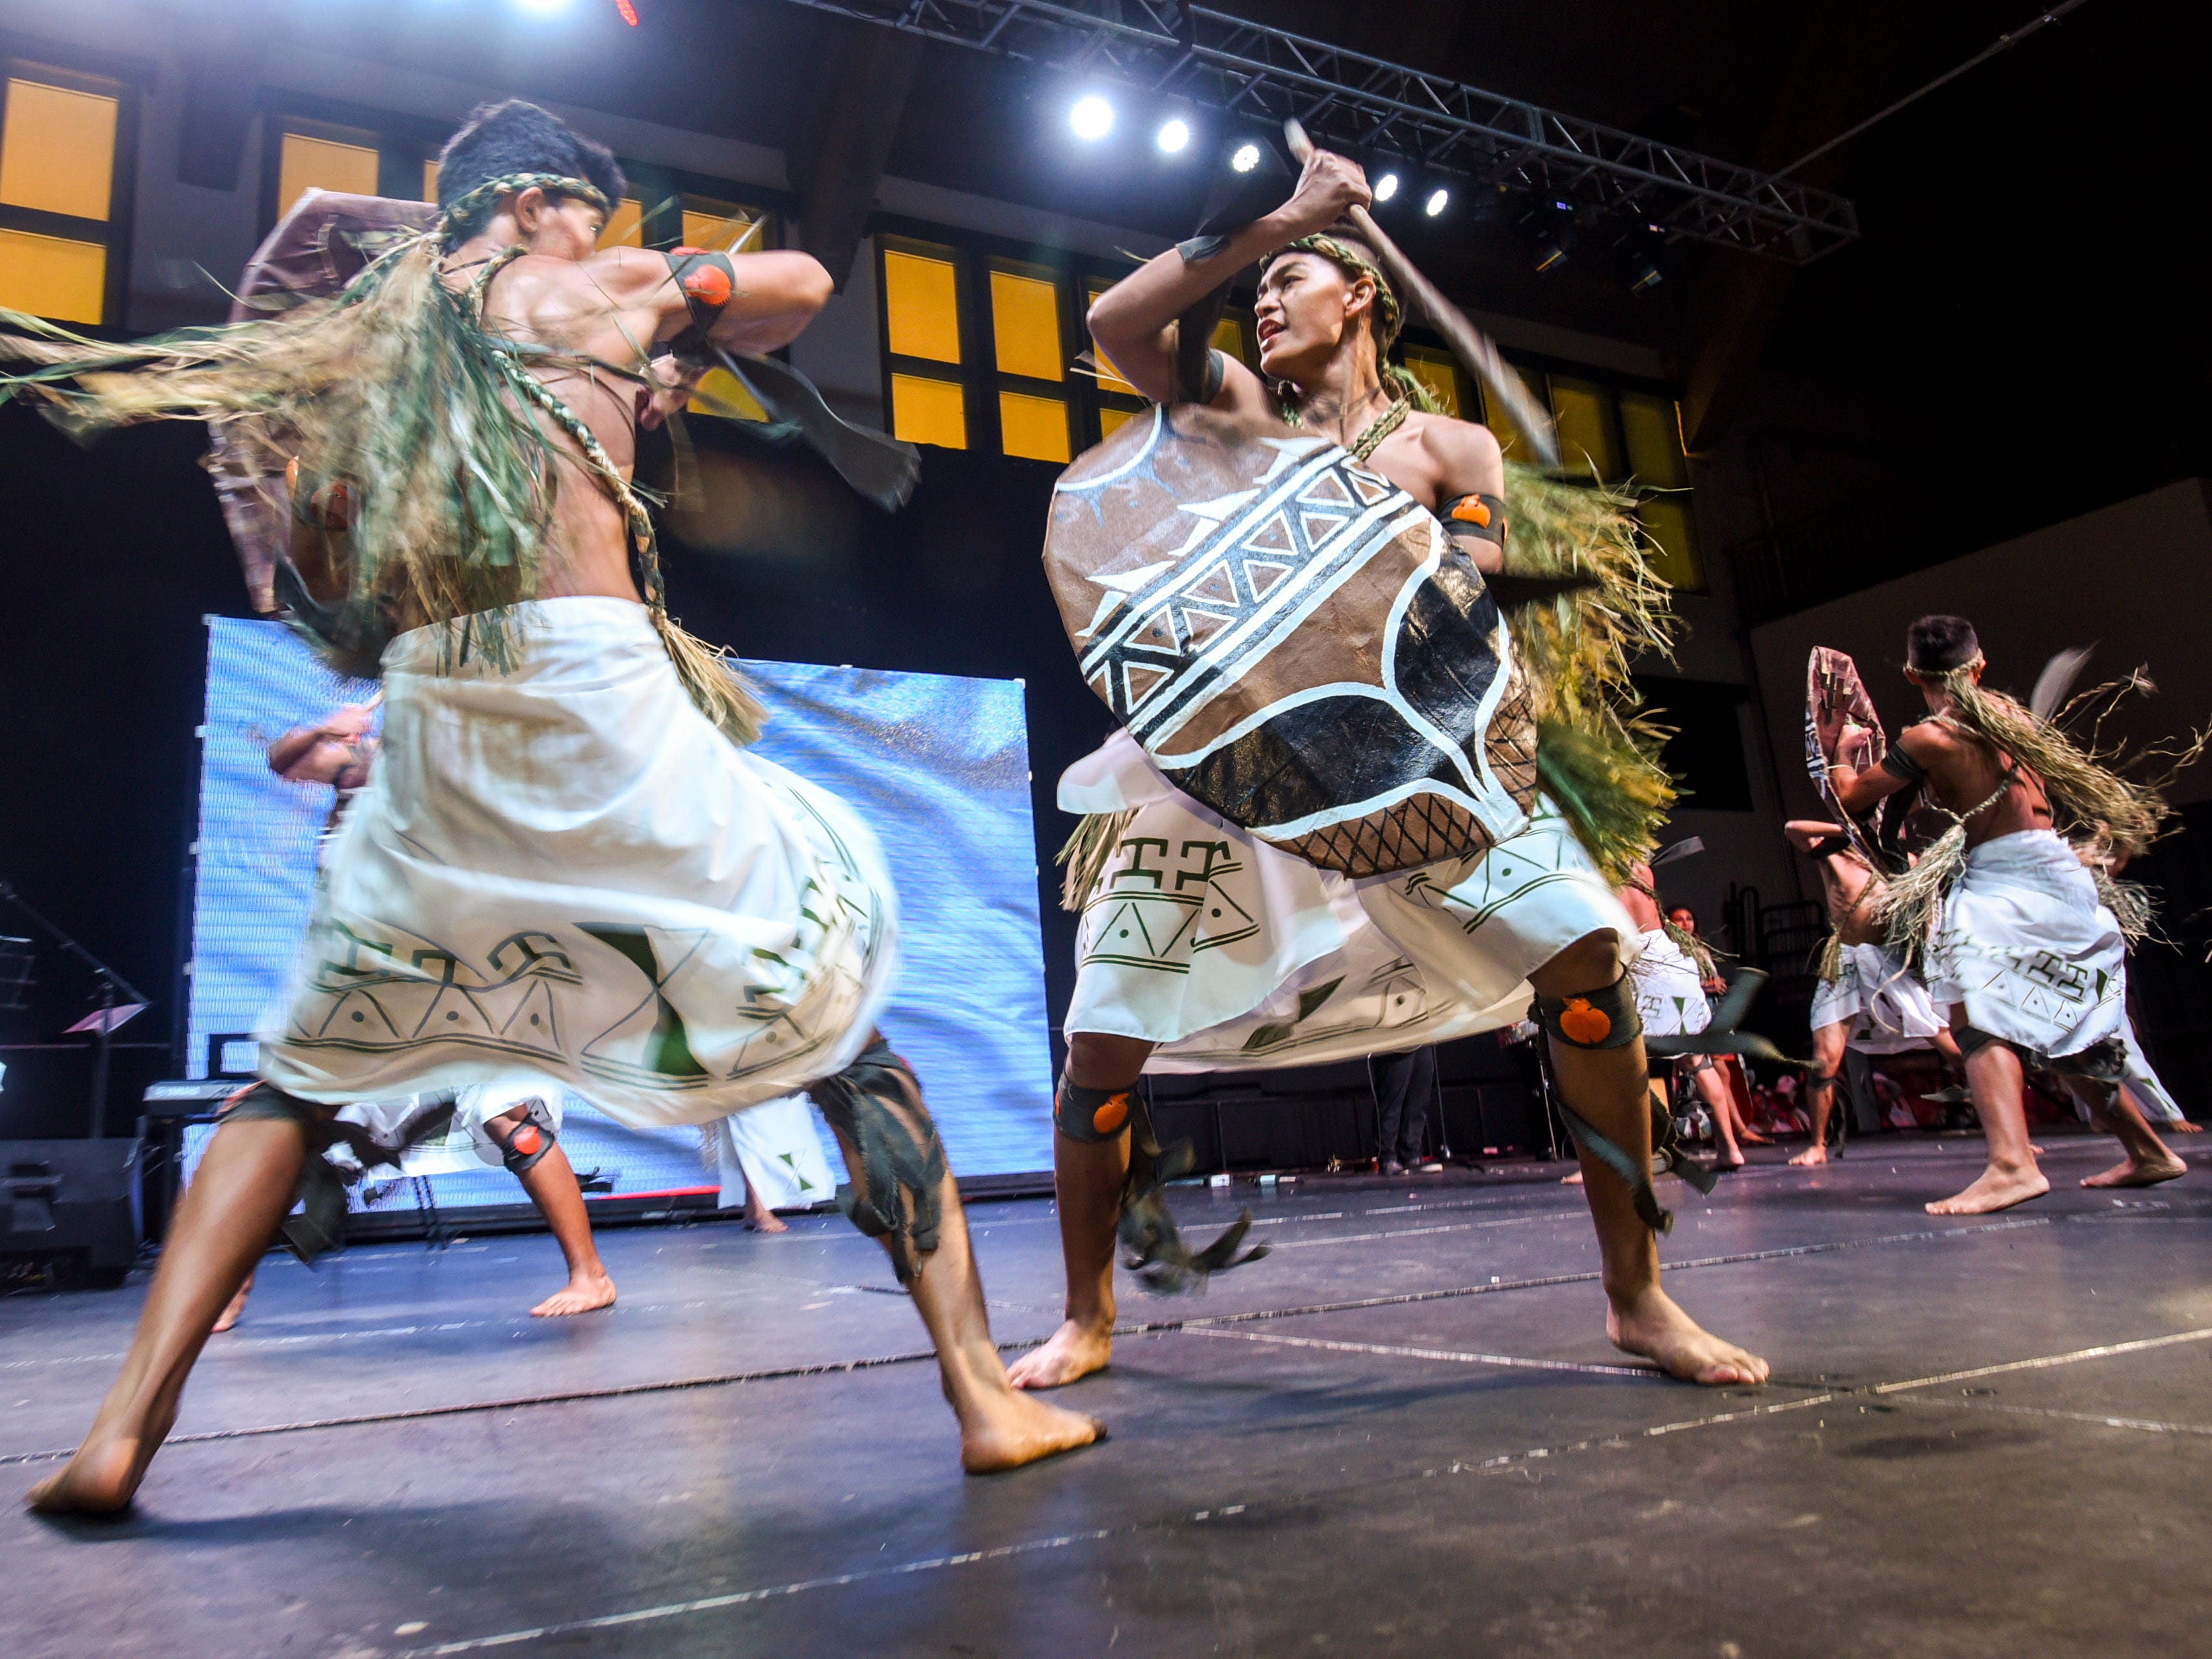 Members of Inetnon Gefpa'go Cultural Arts Program Inc. perform during a matinee show of the 3rd International Dance Festival at the University of Guam Calvo Field House in Mangilao on Wednesday, Dec. 5, 2018. The festival, presented by Inetnon Gefpa'go, is slated to feature dance group performers representing the countries of Argentina, Costa Rica, Mexico, Philippines, Finland and Guam. Shows are scheduled to be held at UOG on Thursday morning and Saturday evening. Additional public shows are scheduled at Dec. 6, 6:30 p.m., Thursday at the Micronesia Mall and another at Dec. 7, 7:30 p.m., Saturday at the Guam Museum.